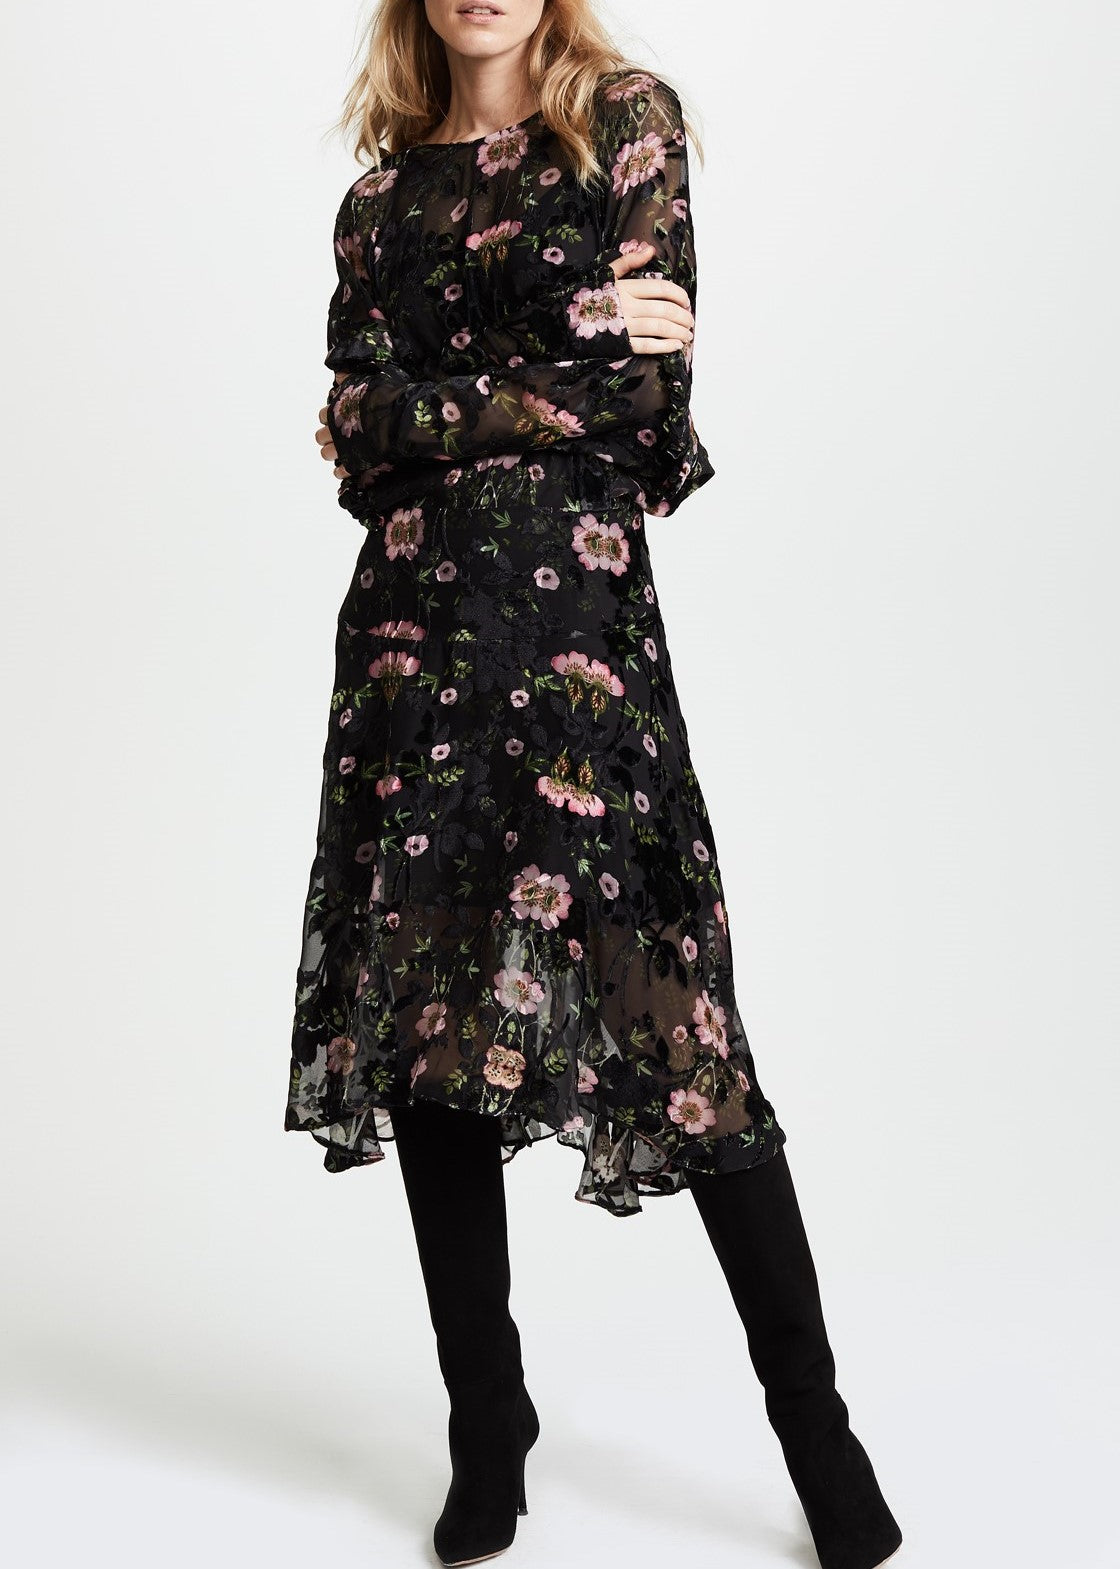 Preen evelina dress wild rose